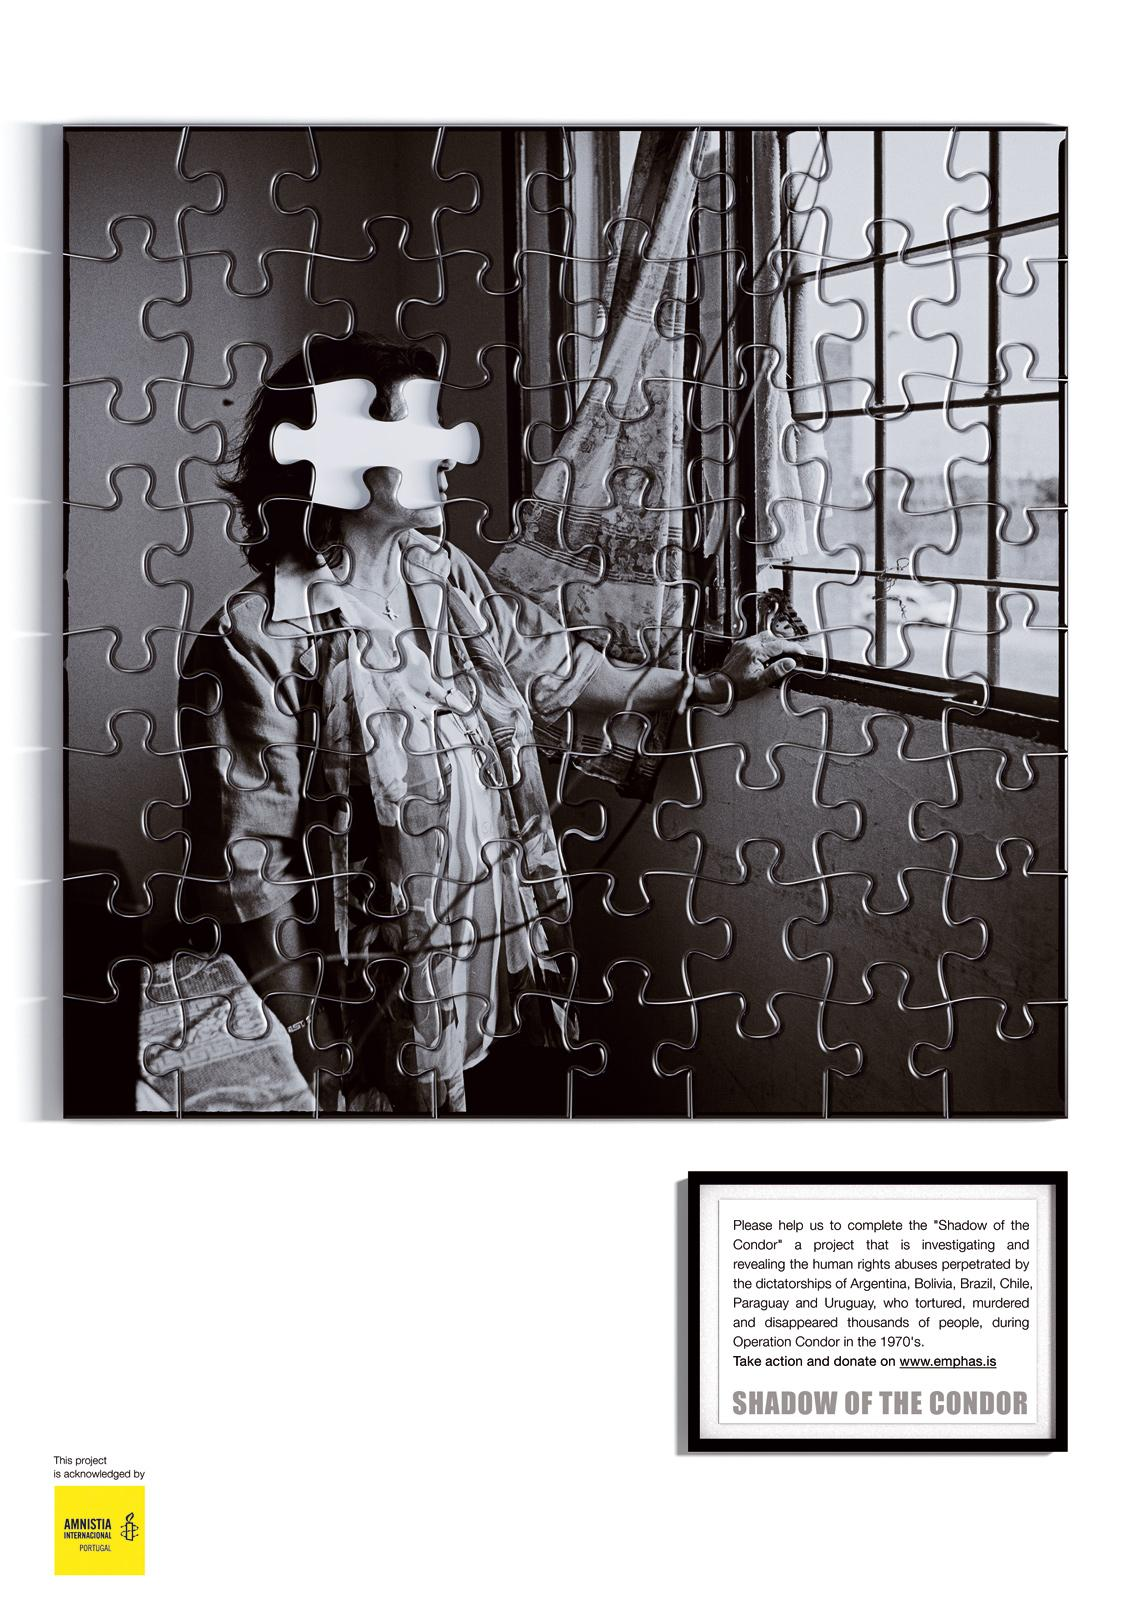 Amnesty International Print Ad -  Shadow Of The Condor Project, 3